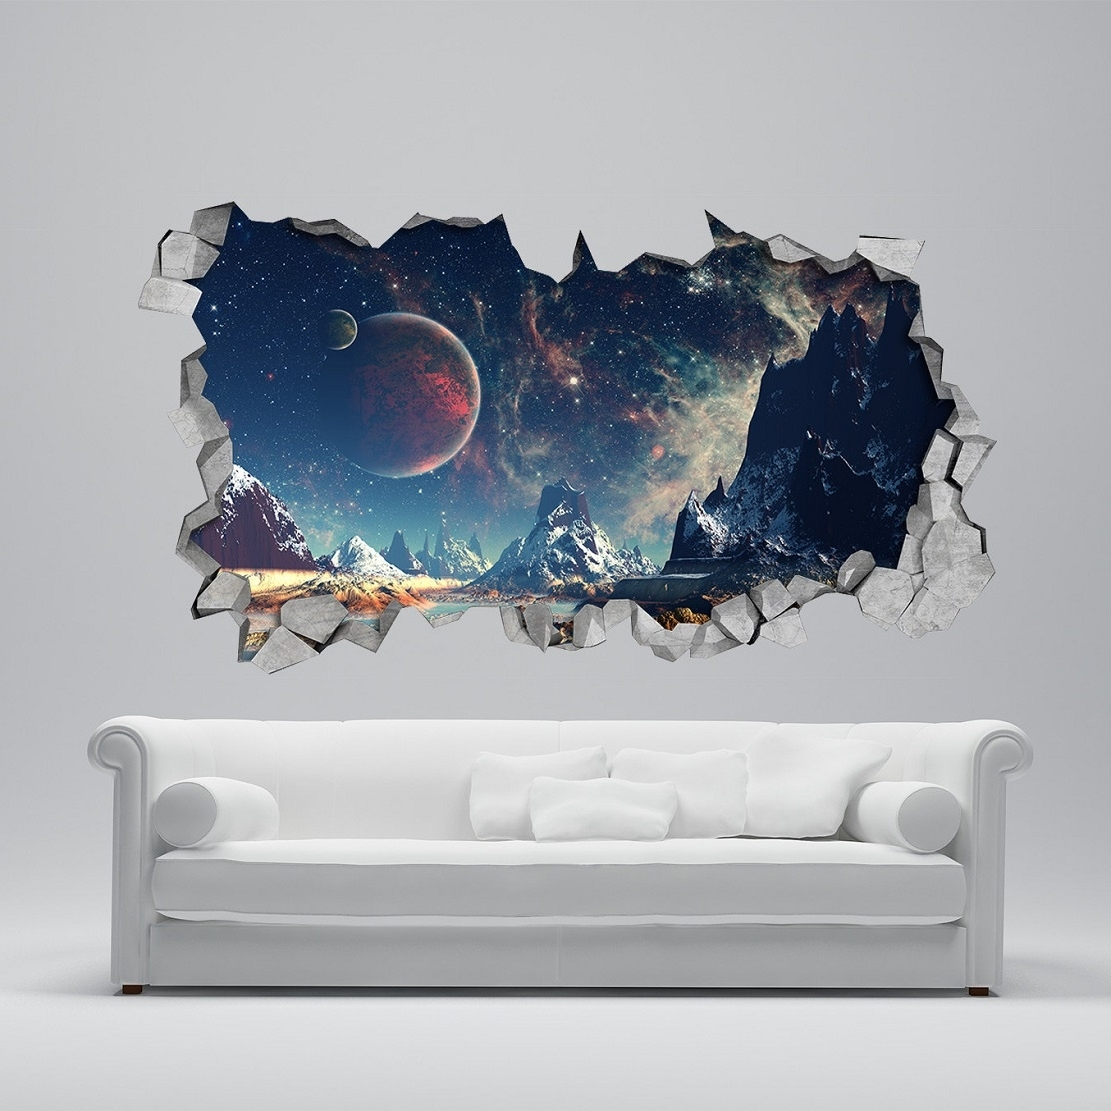 Astronaut 3D Wall Art Inside Famous 25 Unparalleled 3D Wall Art For Charming Home (View 3 of 15)